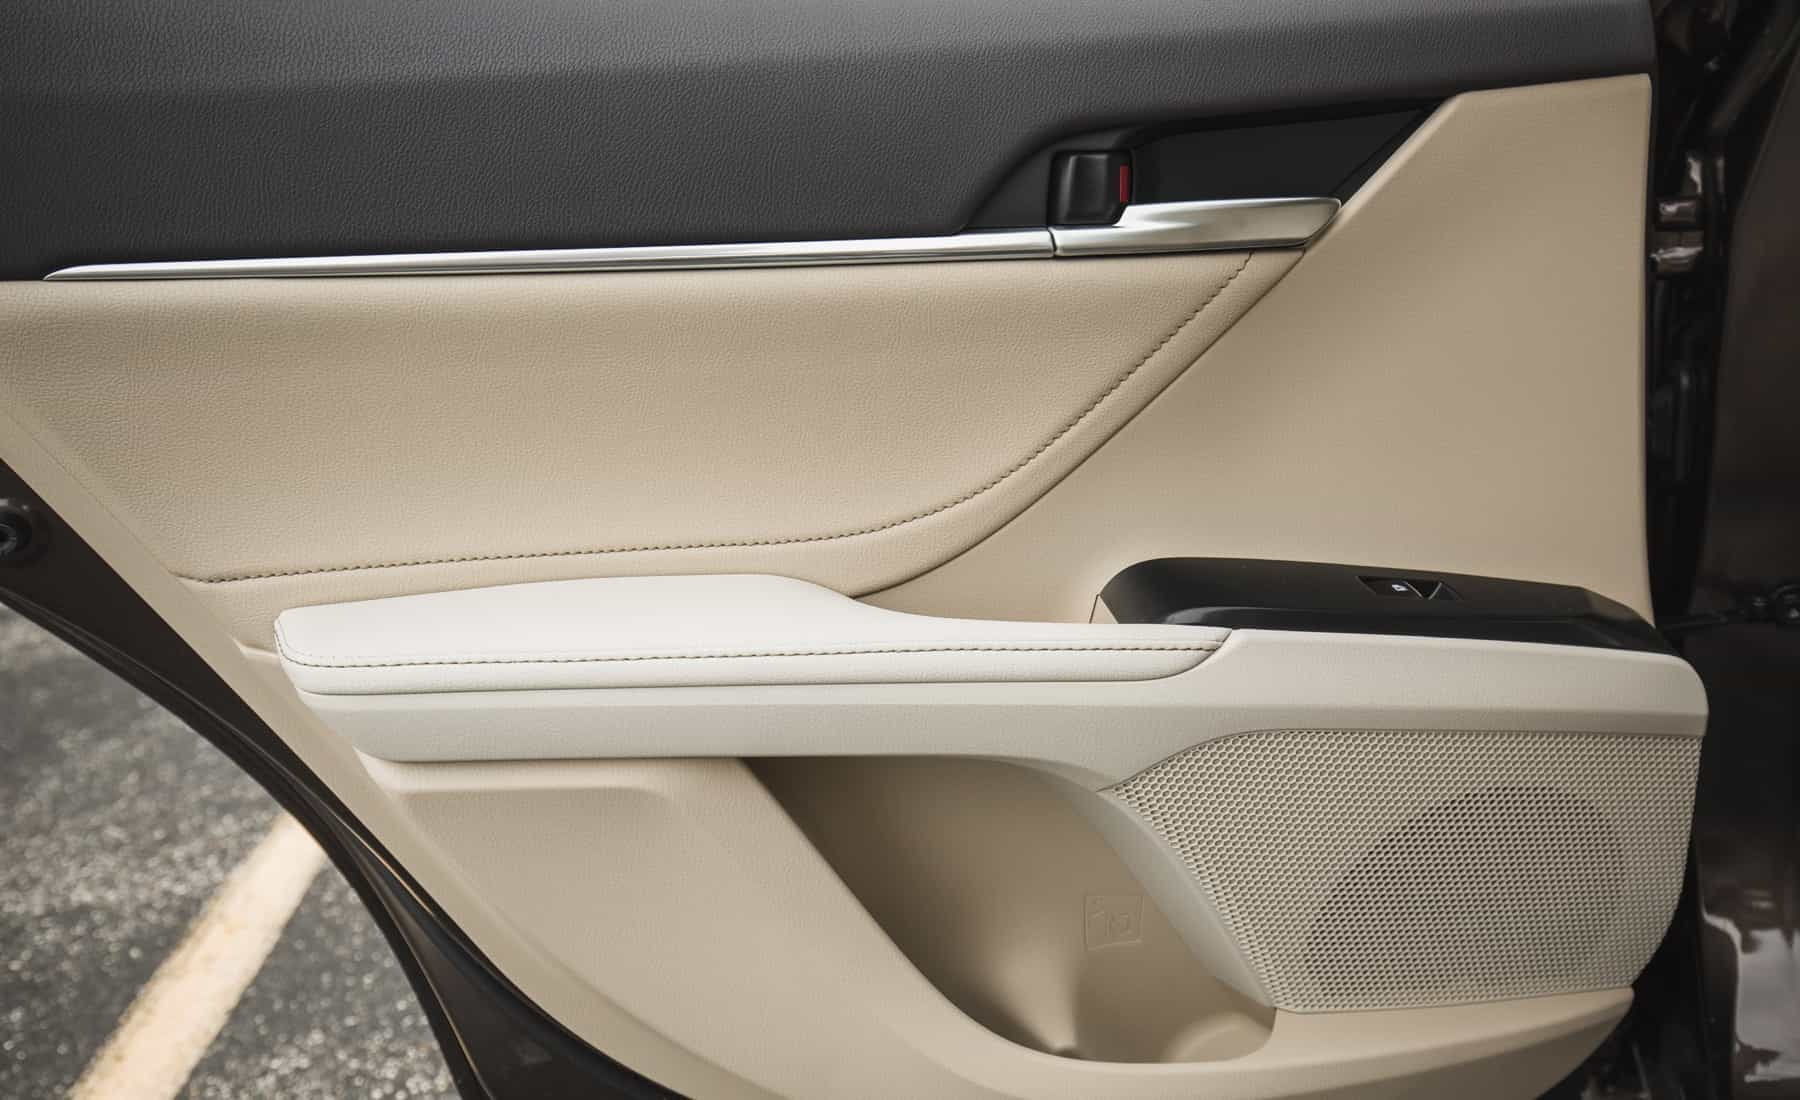 2018 Toyota Camry Hybrid XLE Interior View Door Trim Rear (Photo 20 of 41)